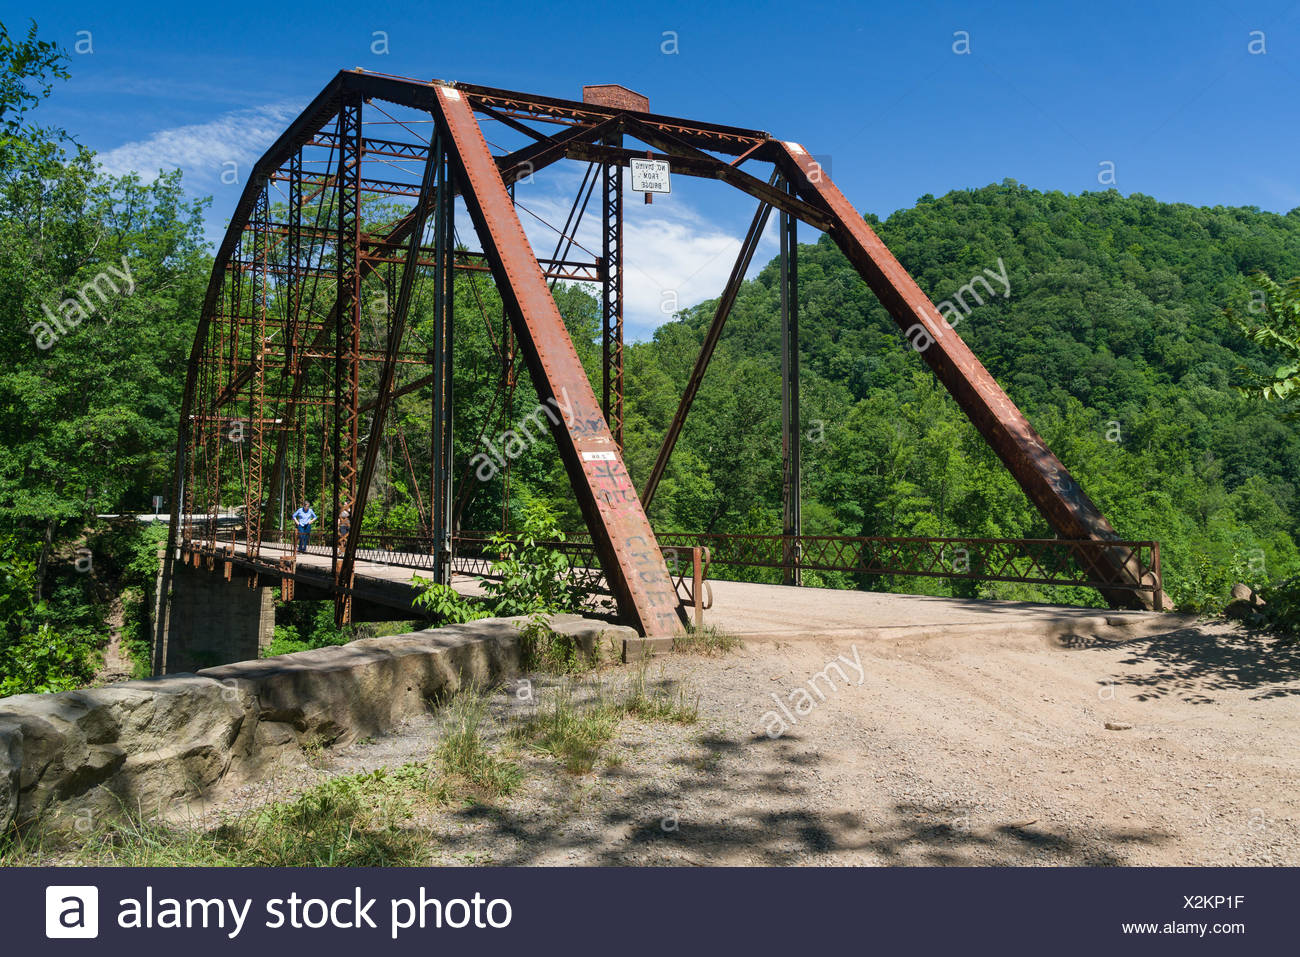 View of Jenkinsburg Bridge over Cheat River - Stock Image